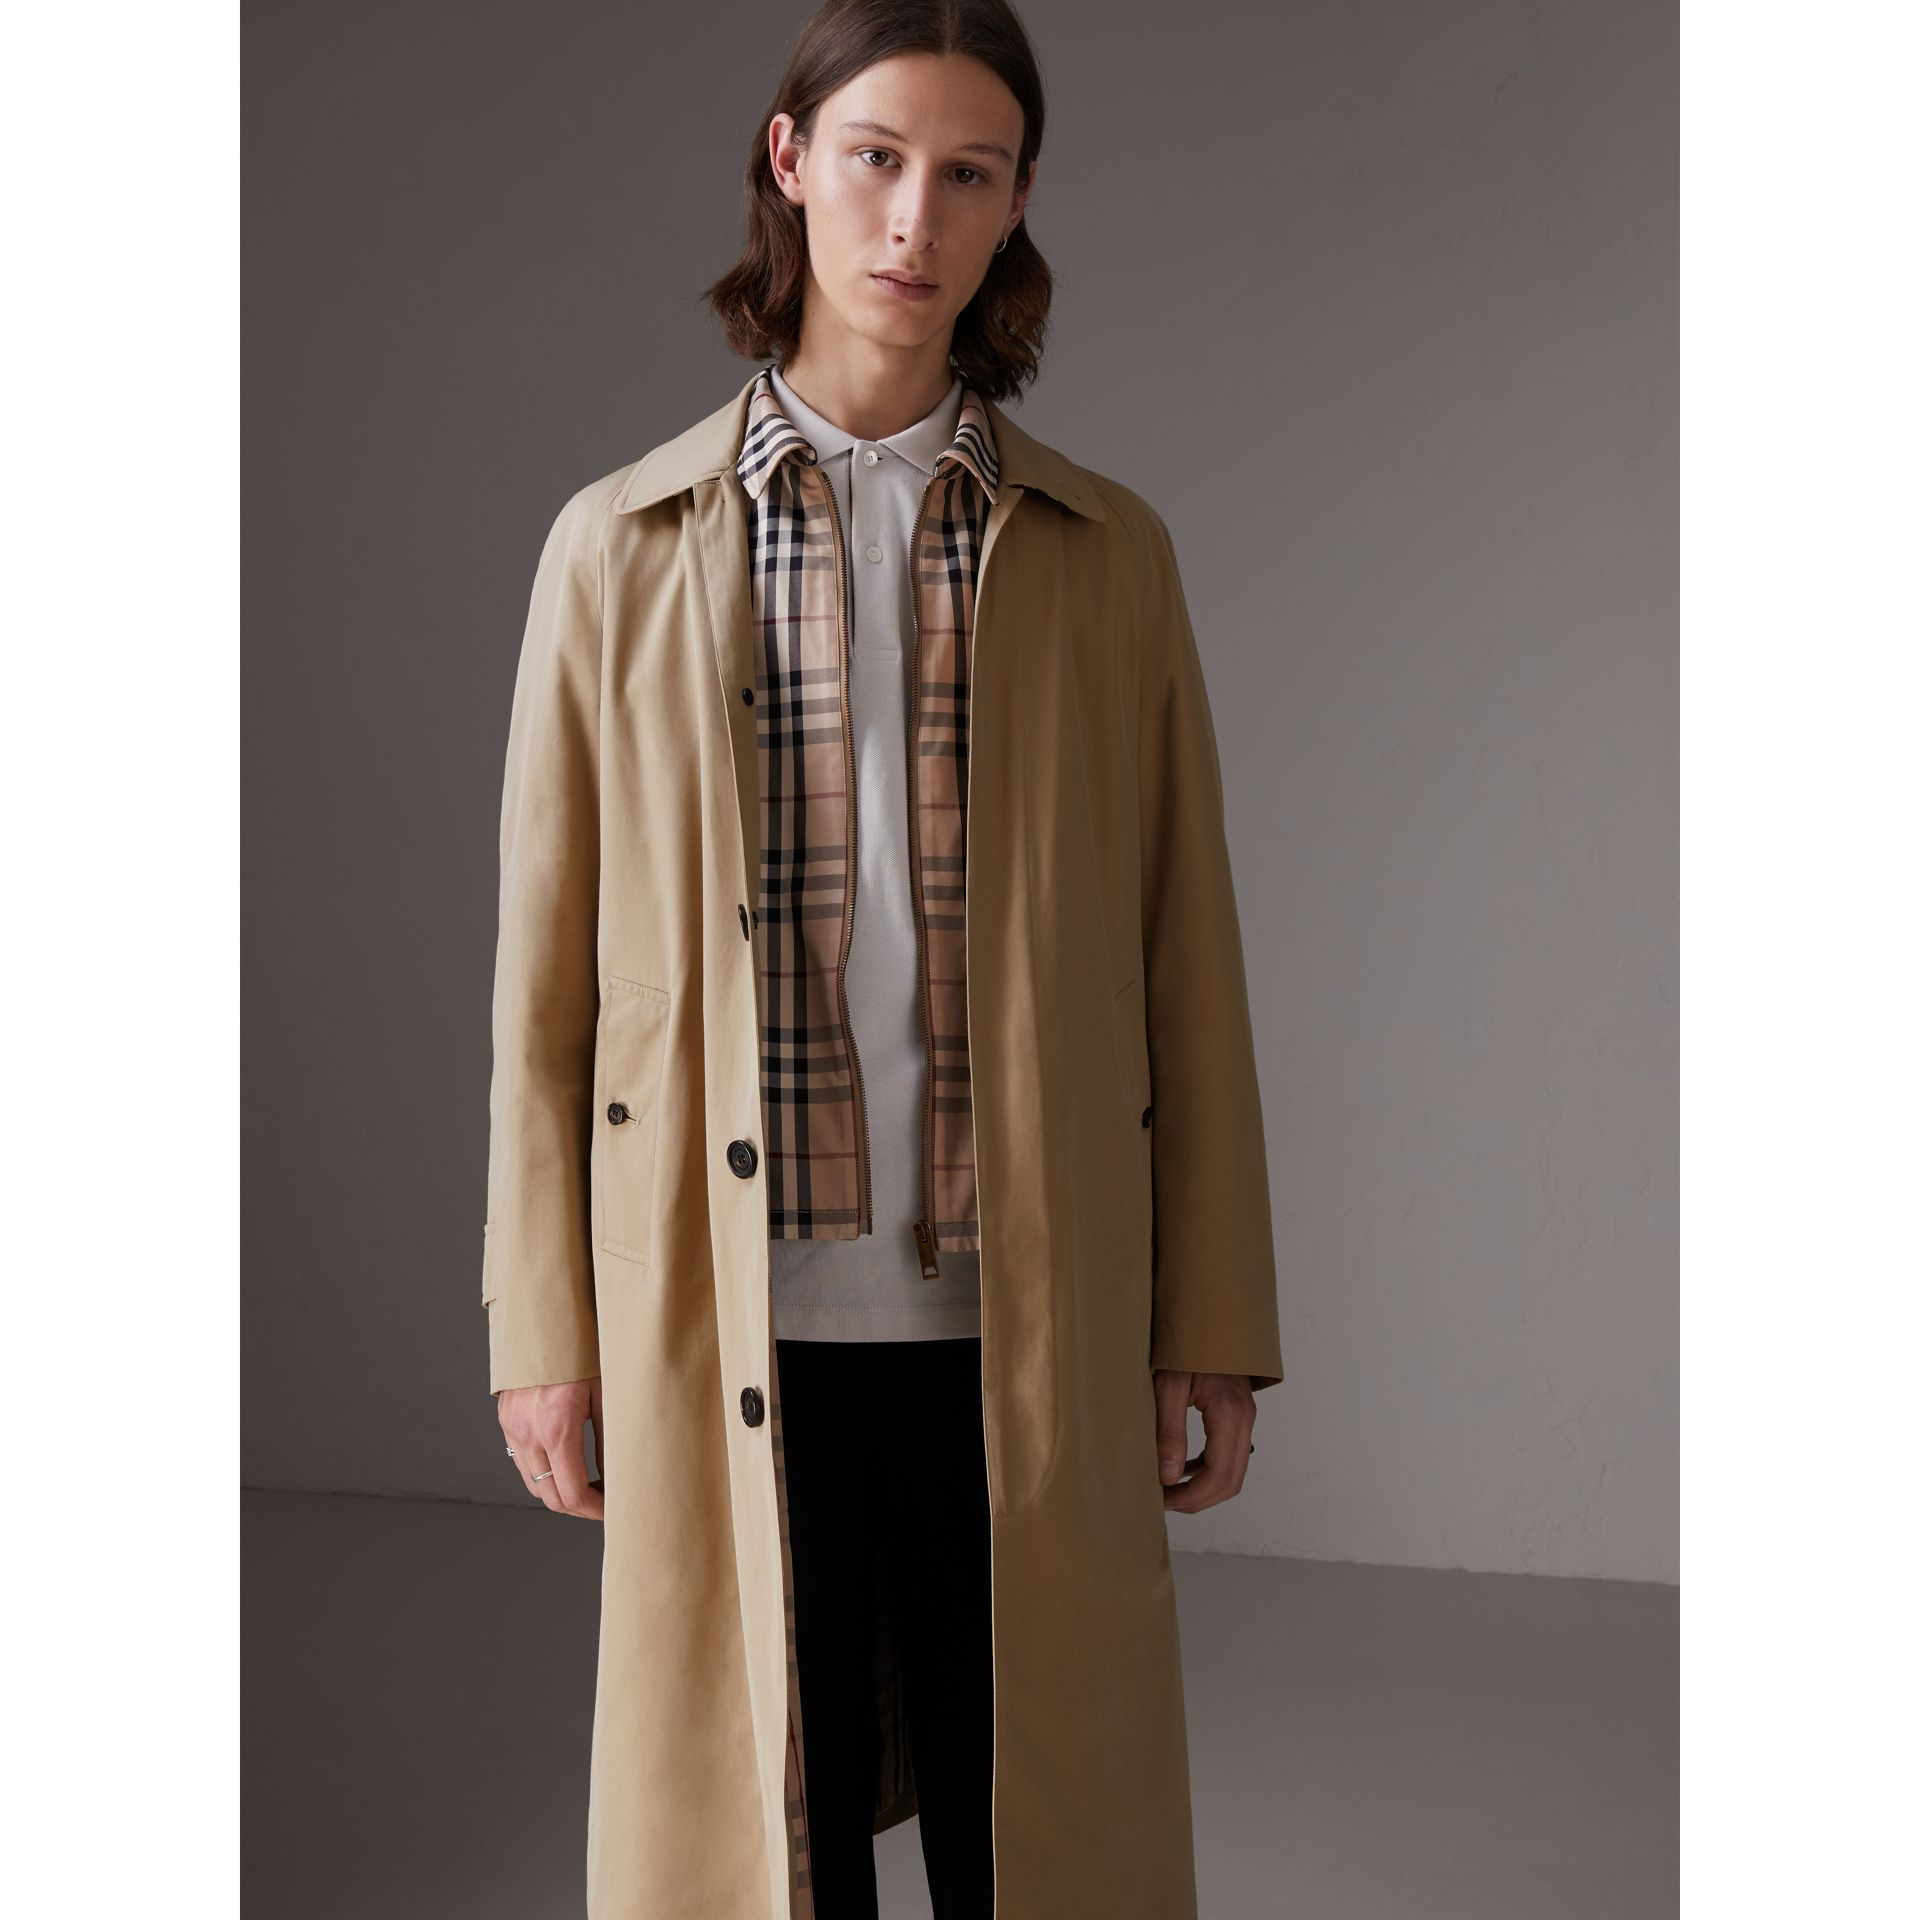 Gosha x Burberry Reconstructed Car Coat in Honey | Burberry Australia - gallery image 2